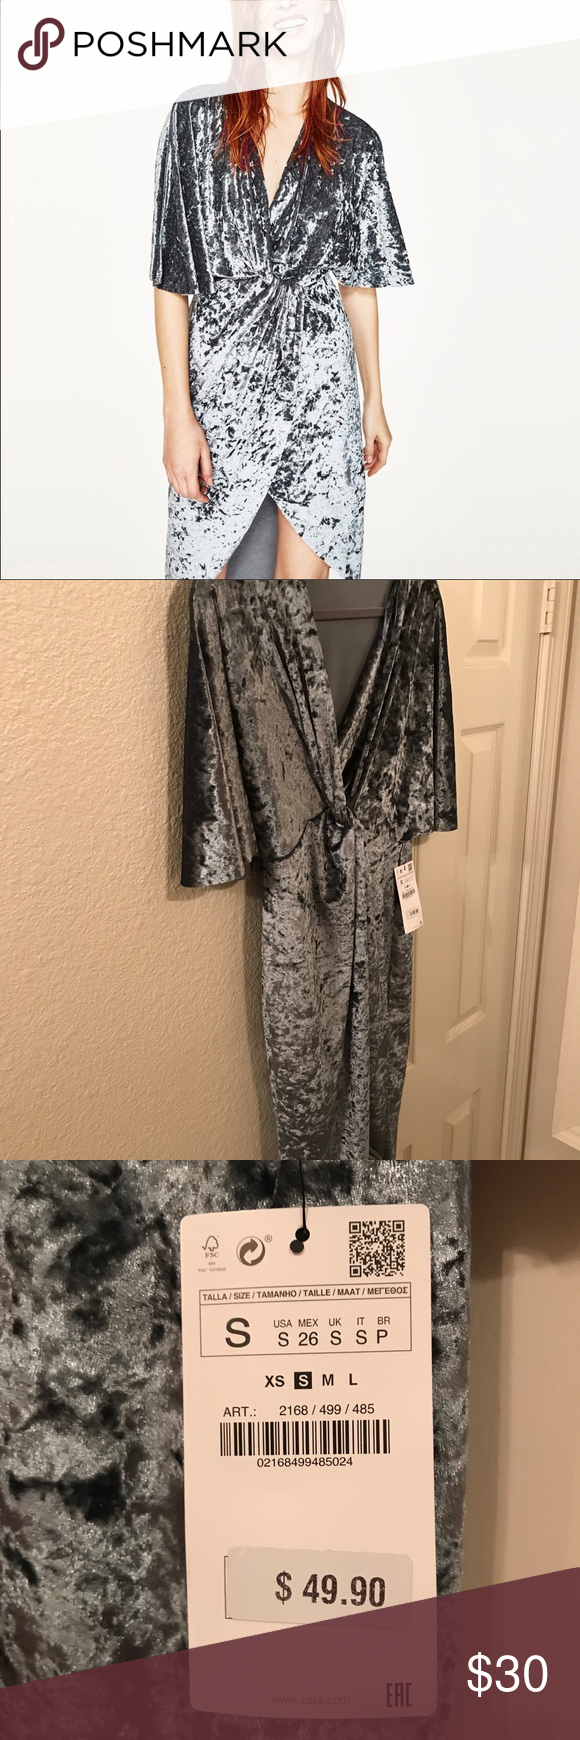 92d3ef86 Zara Velvet Crossover Dress Never been worn! Sexy velvet dress perfect for  nights out, weddings and classy events. Color is a blue grey.